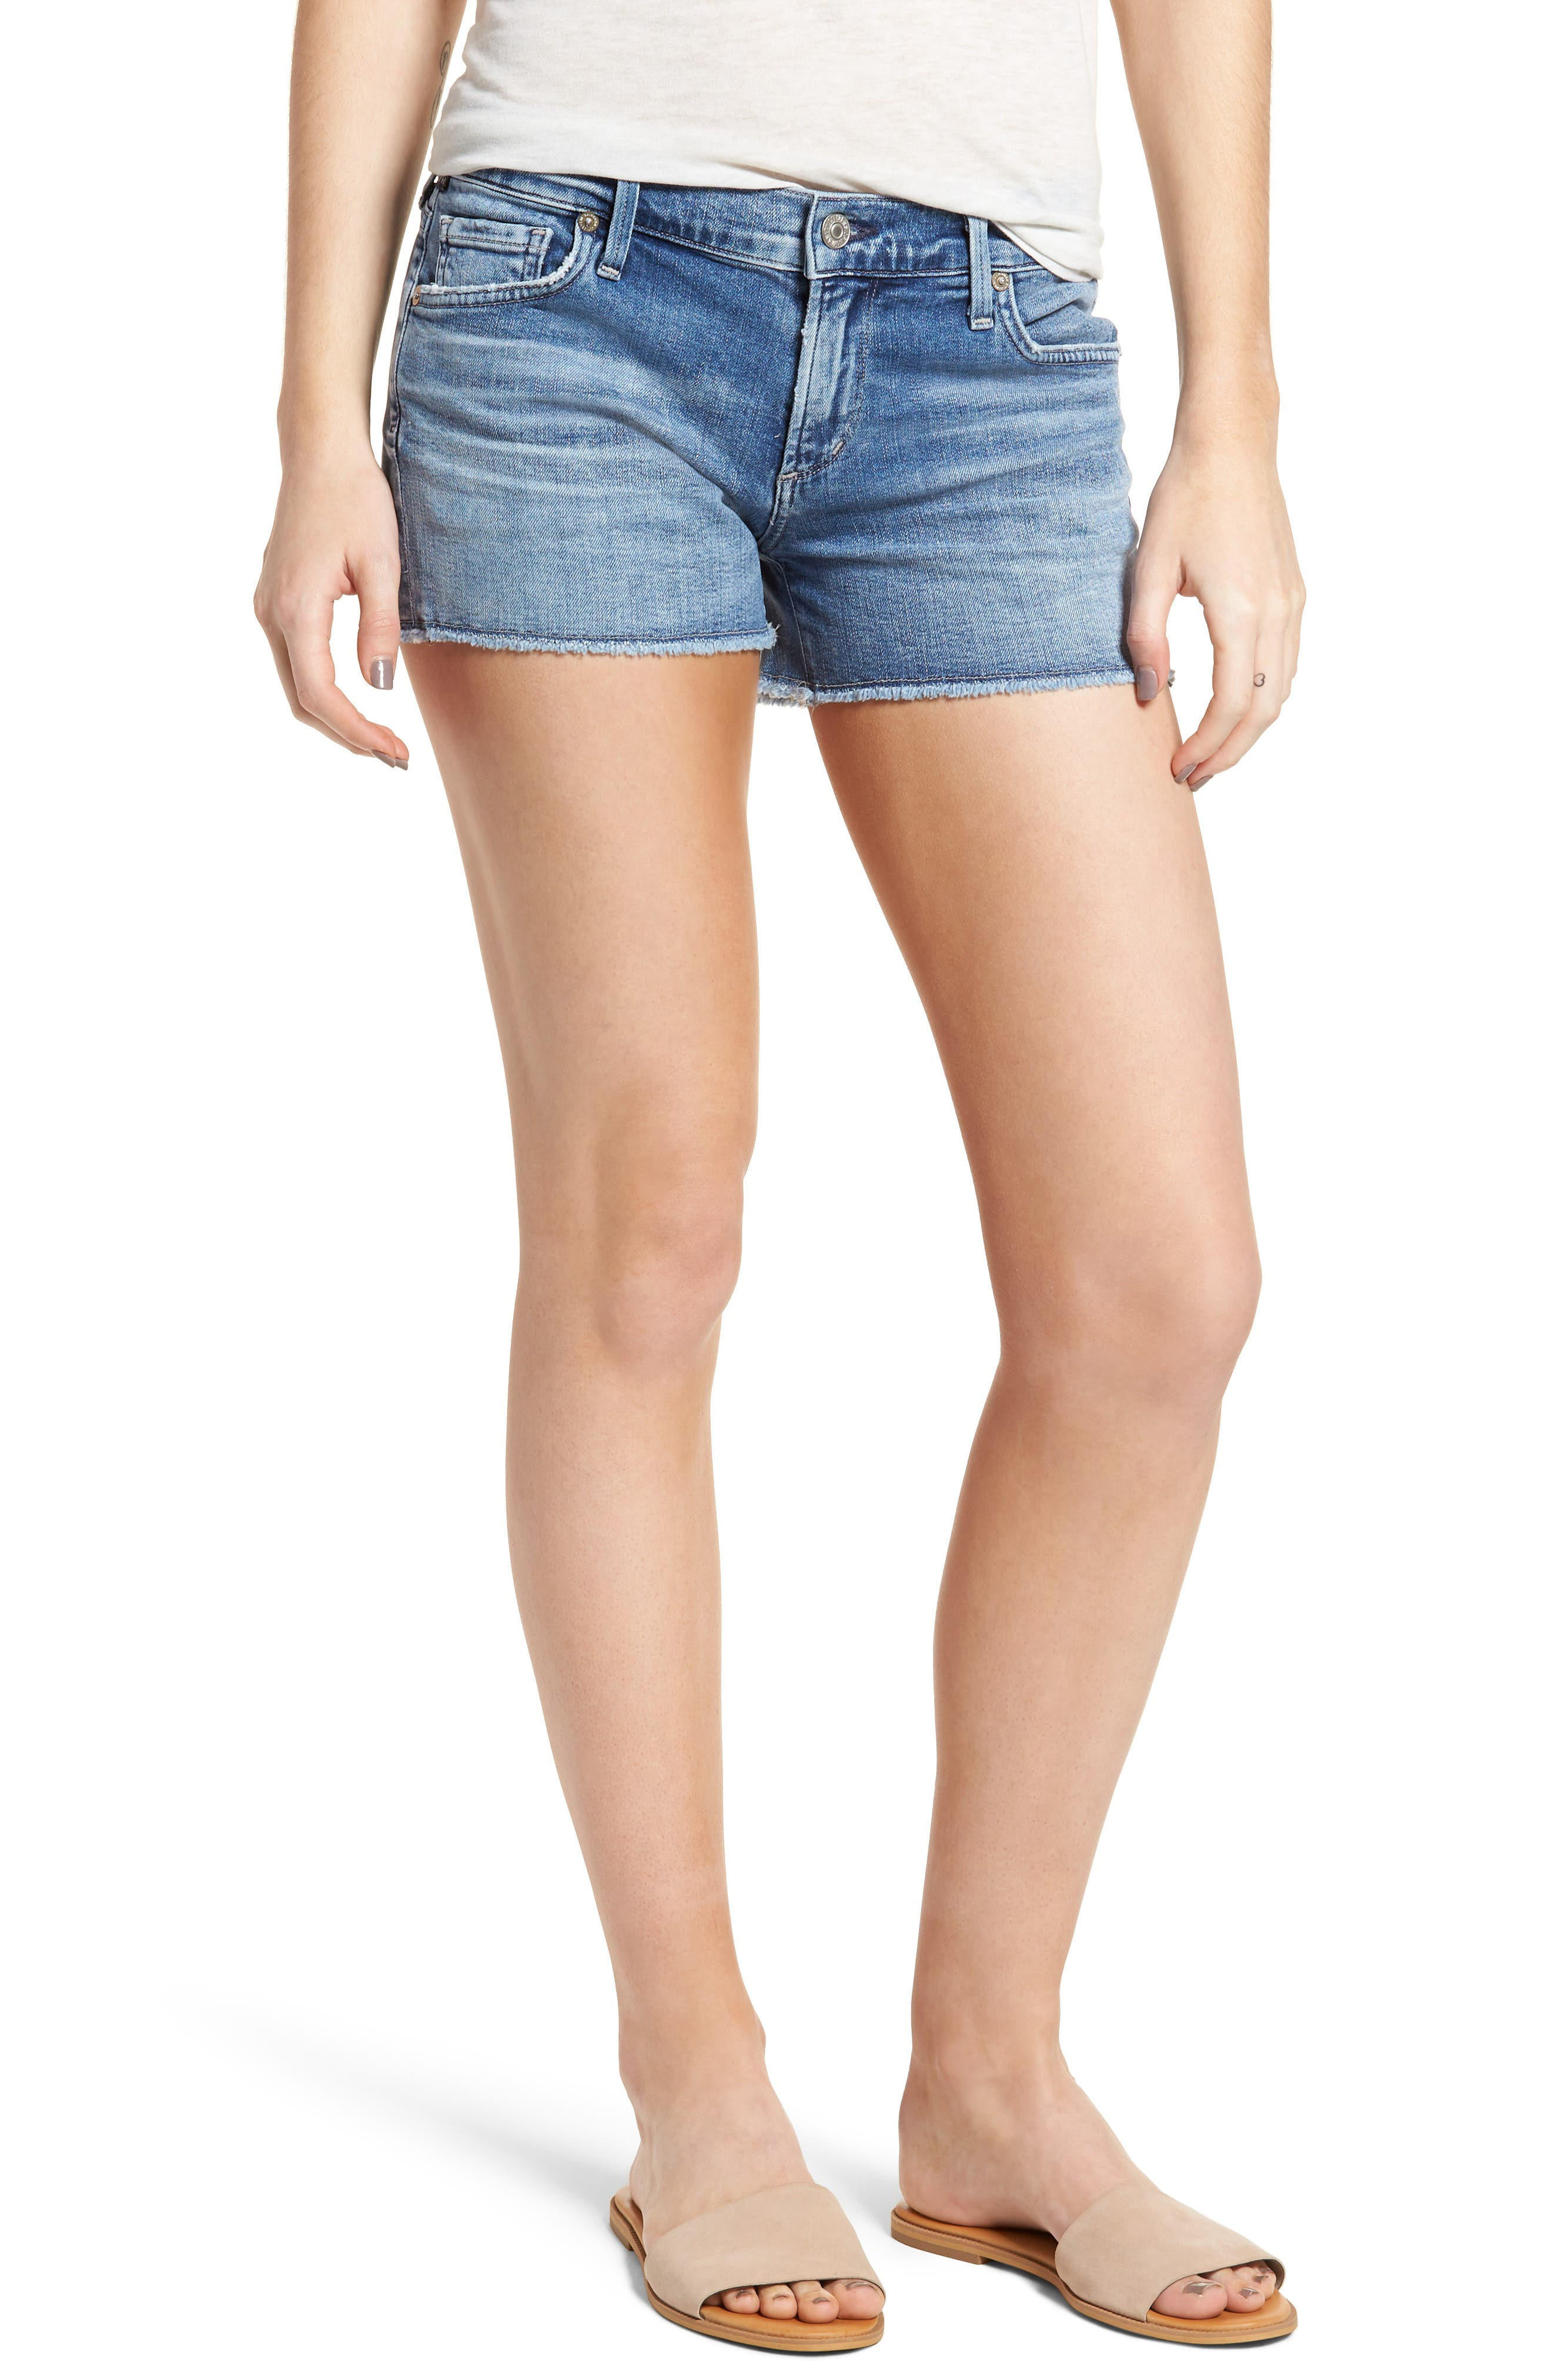 Alternate Image 1 Selected - Citizens of Humanity Ava Cutoff Denim Shorts (Pacifica)